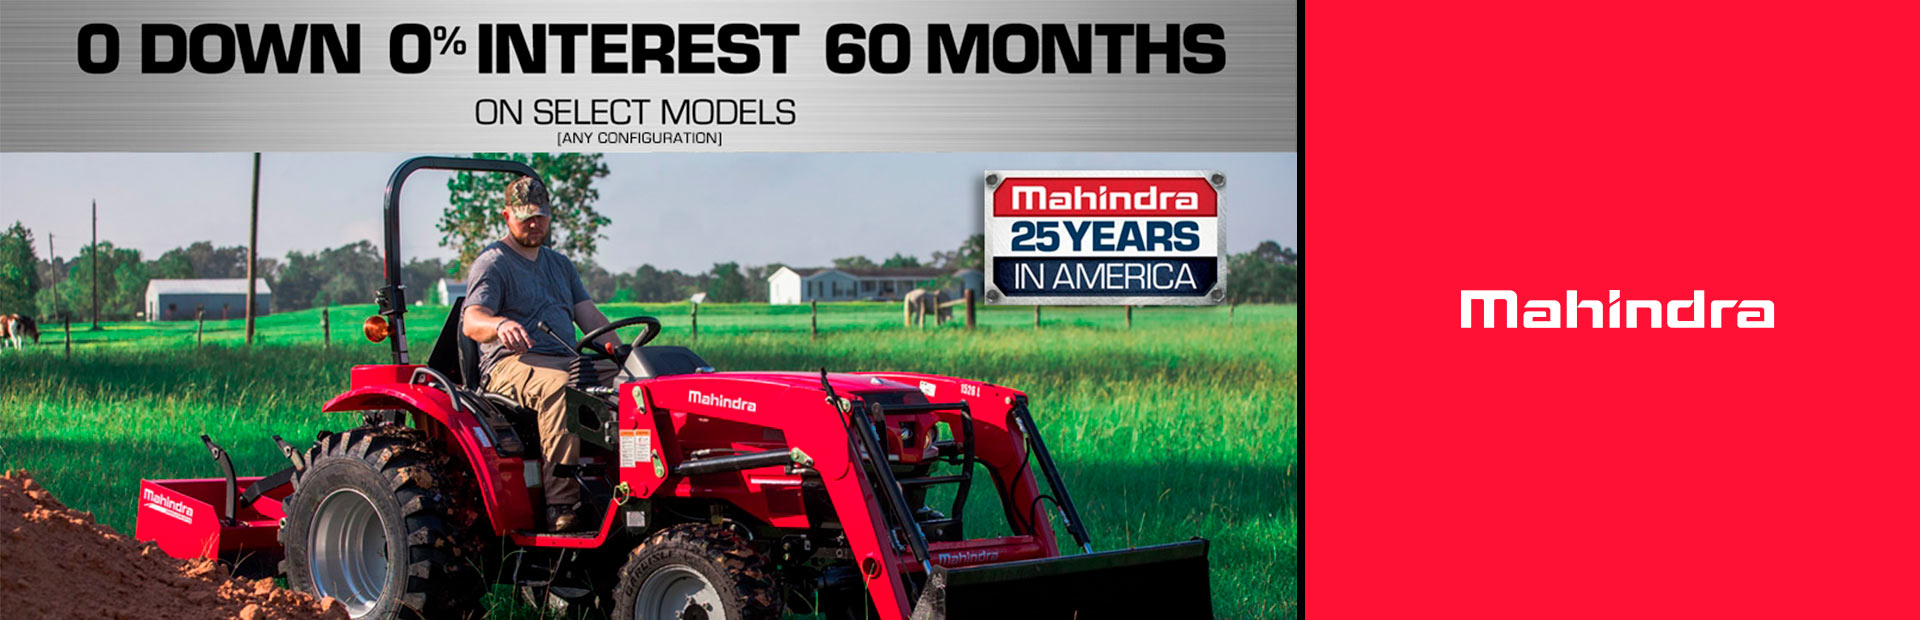 Mahindra: 0 DOWN / 0% INTEREST / 60 MONTHS